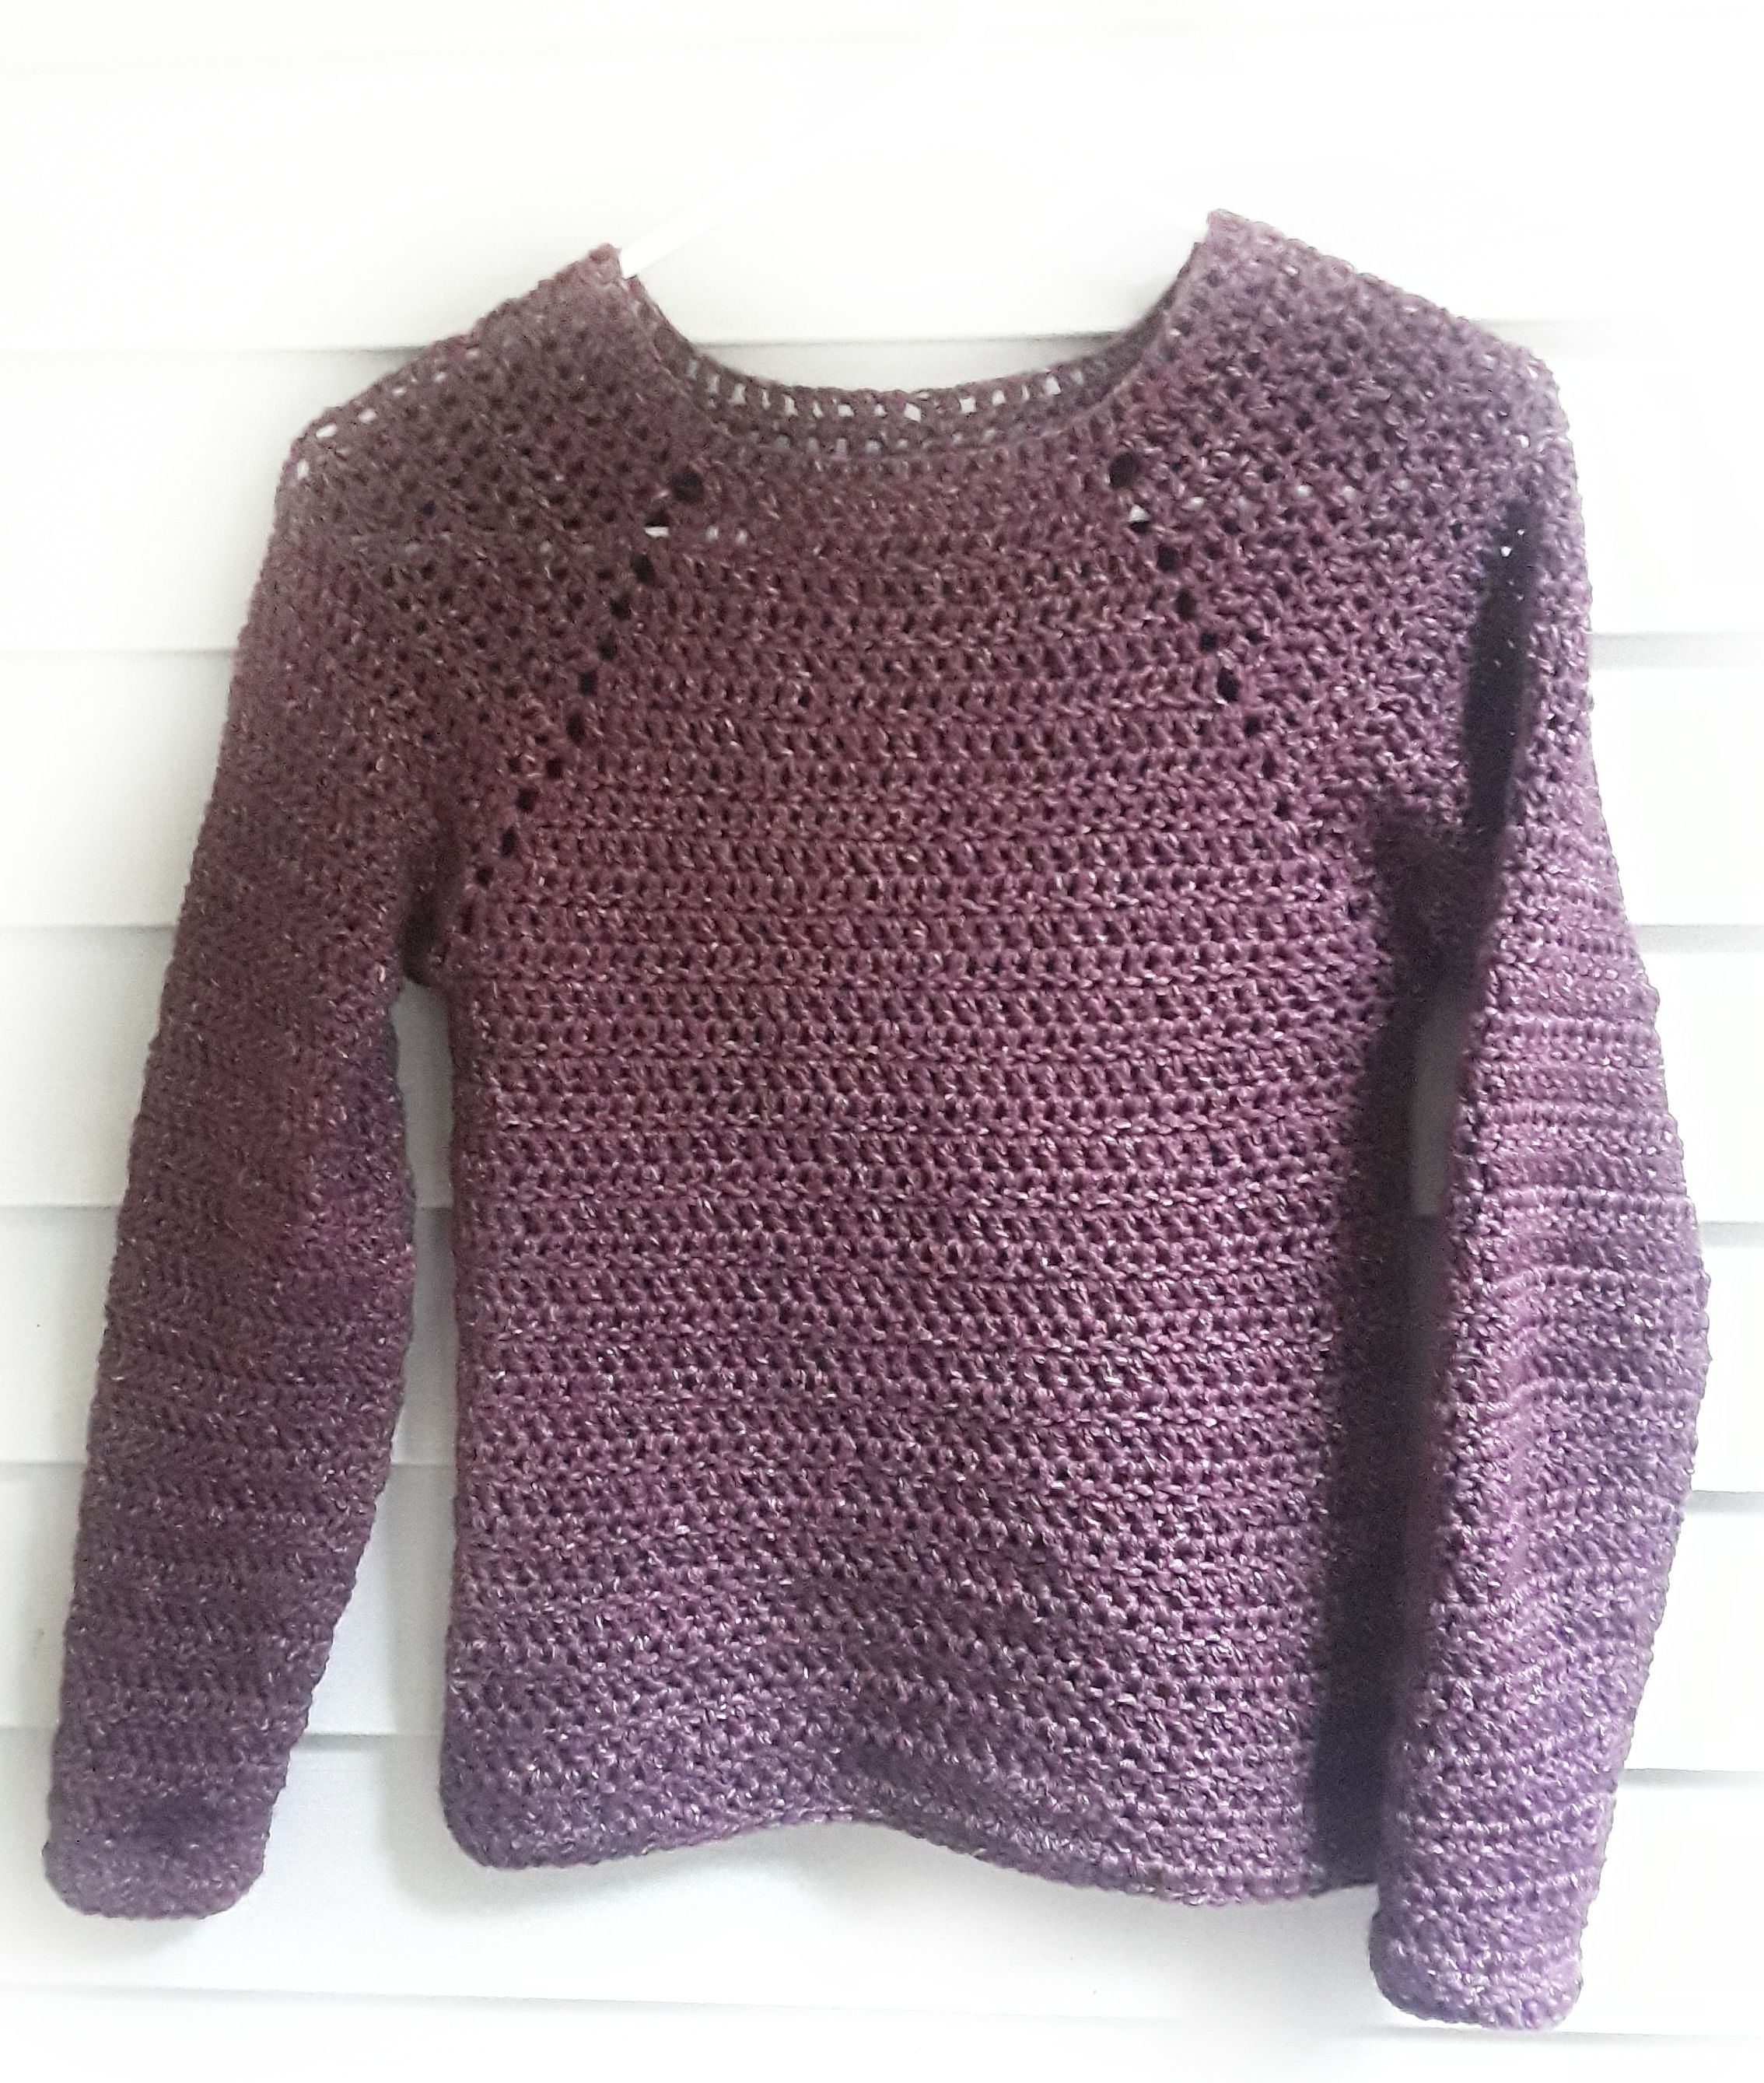 d55dc9fba455 Raglan Sweater Crochet Pattern